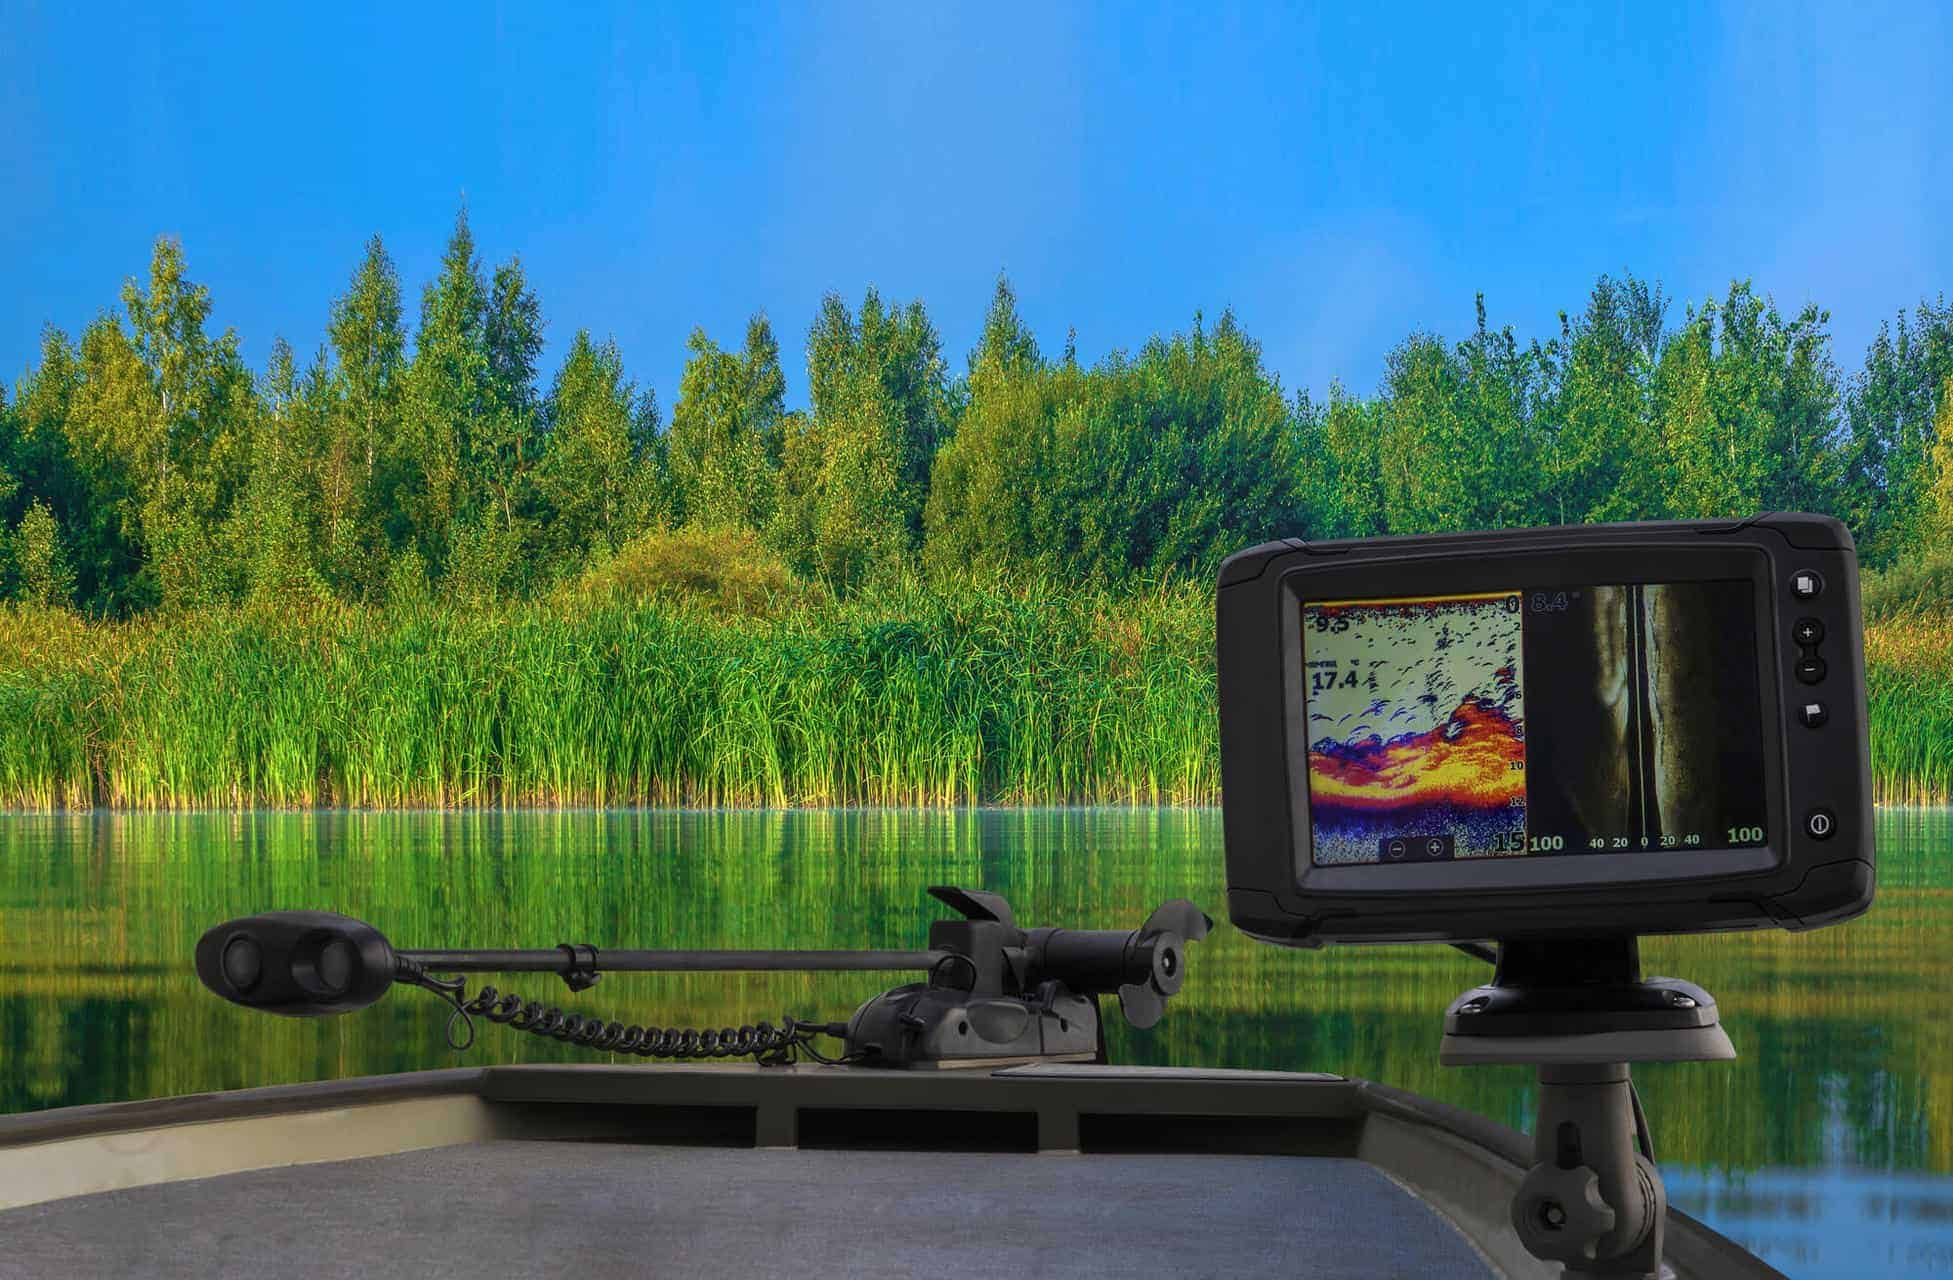 5 best fish finder for kayak